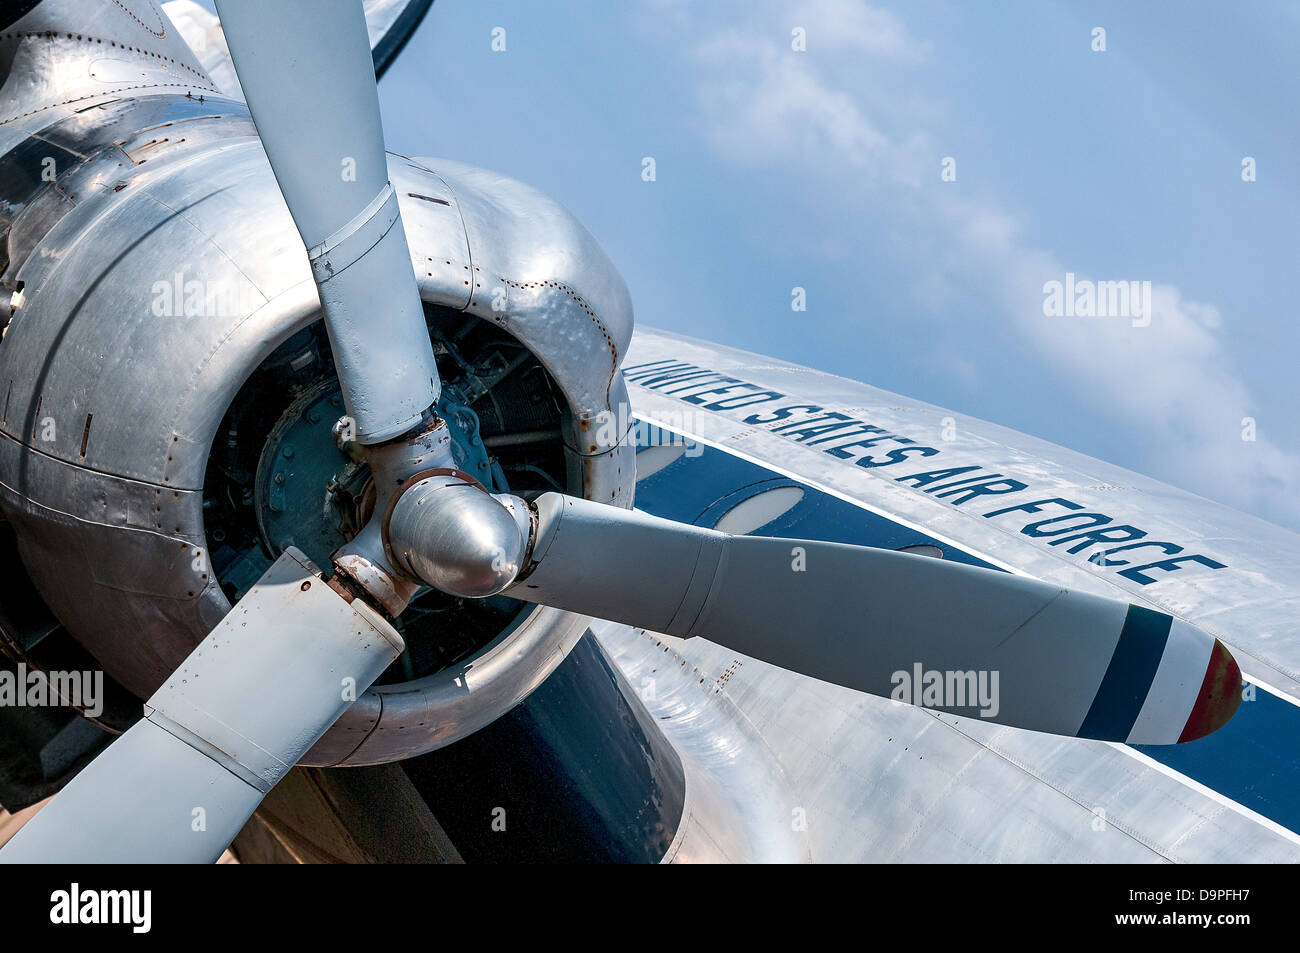 Vieux airplaine, aviation amercica airforce Photo Stock